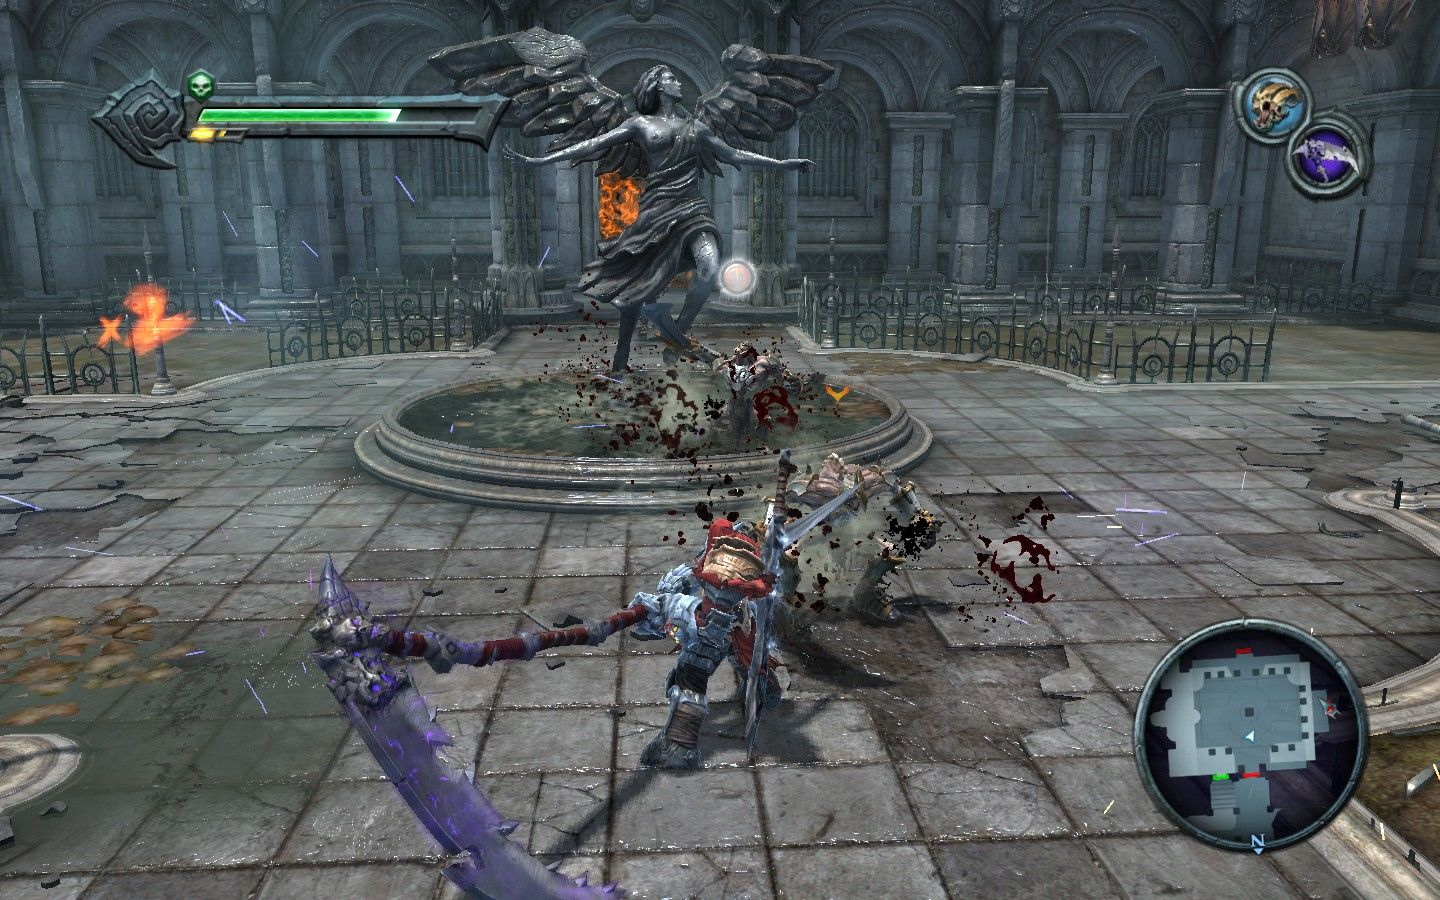 Darksiders Windows The many ways of the art: #3 Swing Scythe in a circular fashion to fascinate enemies.